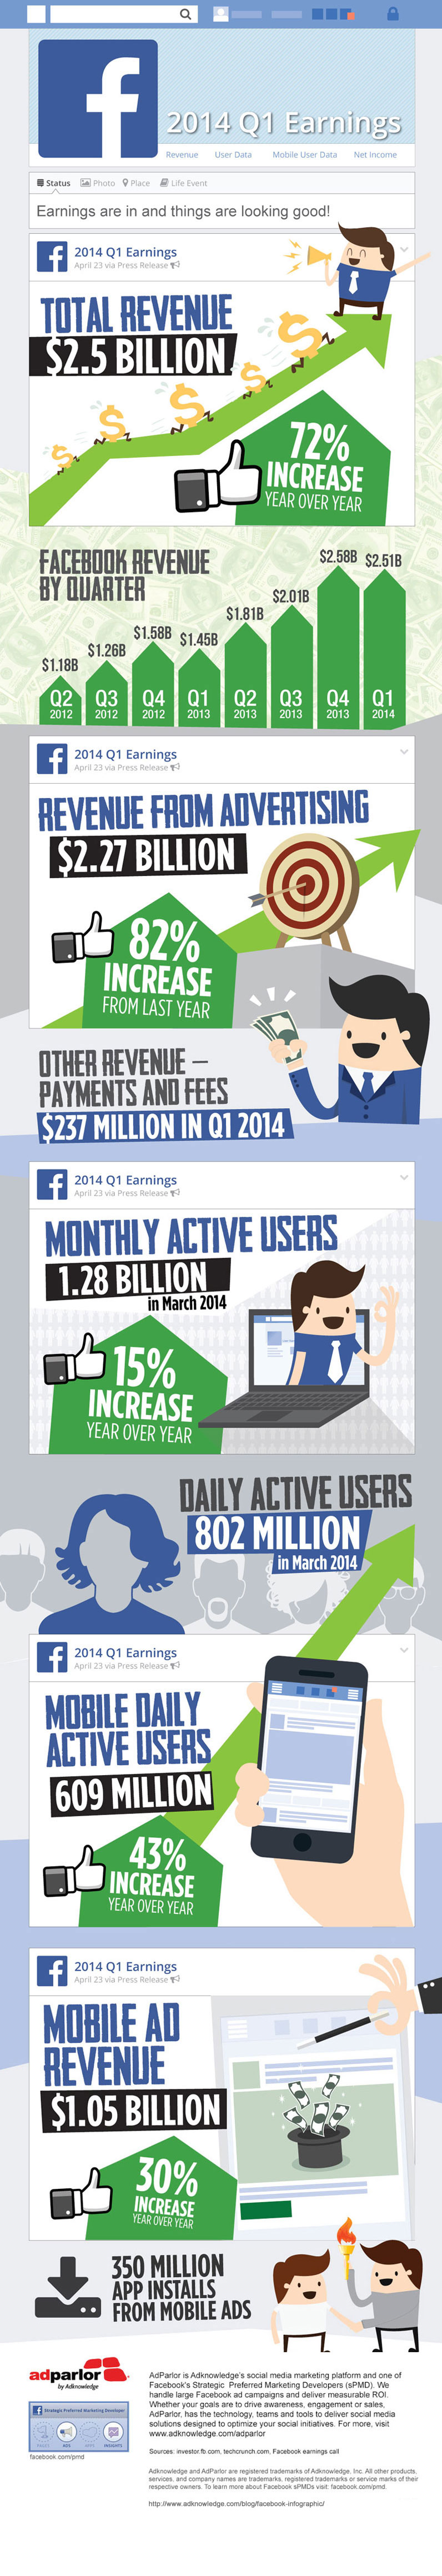 wersm-Facebook-Earnings-Q12014-AdParlor